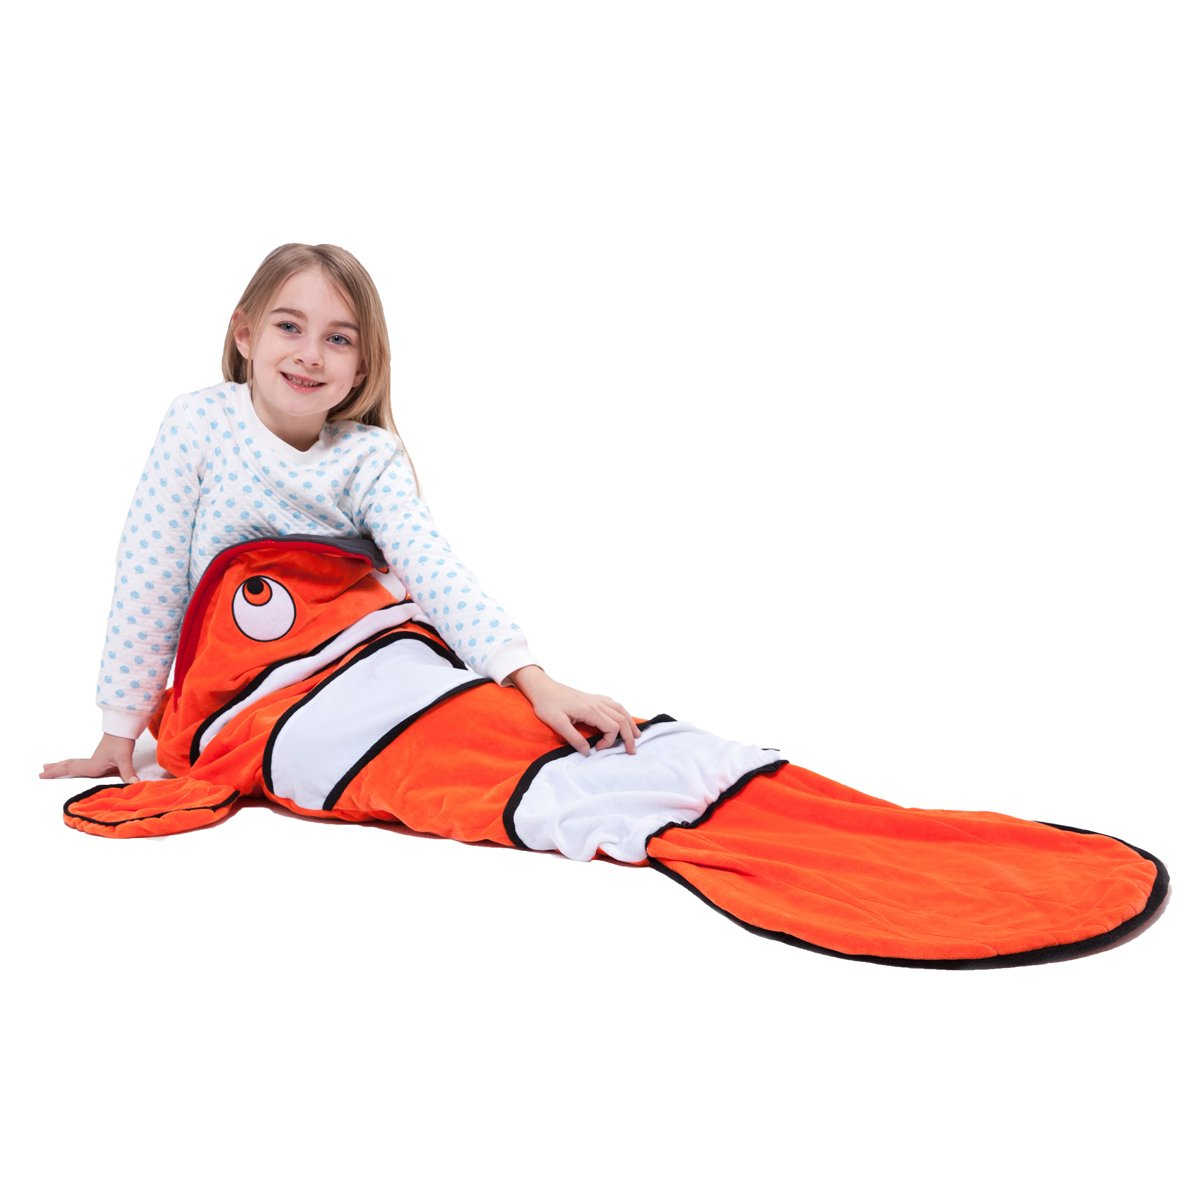 Echolife Clown Fish Tail Blanket Soft Fleece Children Sleeping Bag Christmas Gifts for Kids 3-10 Years Old - Designed by Echolife (Clown Fish)